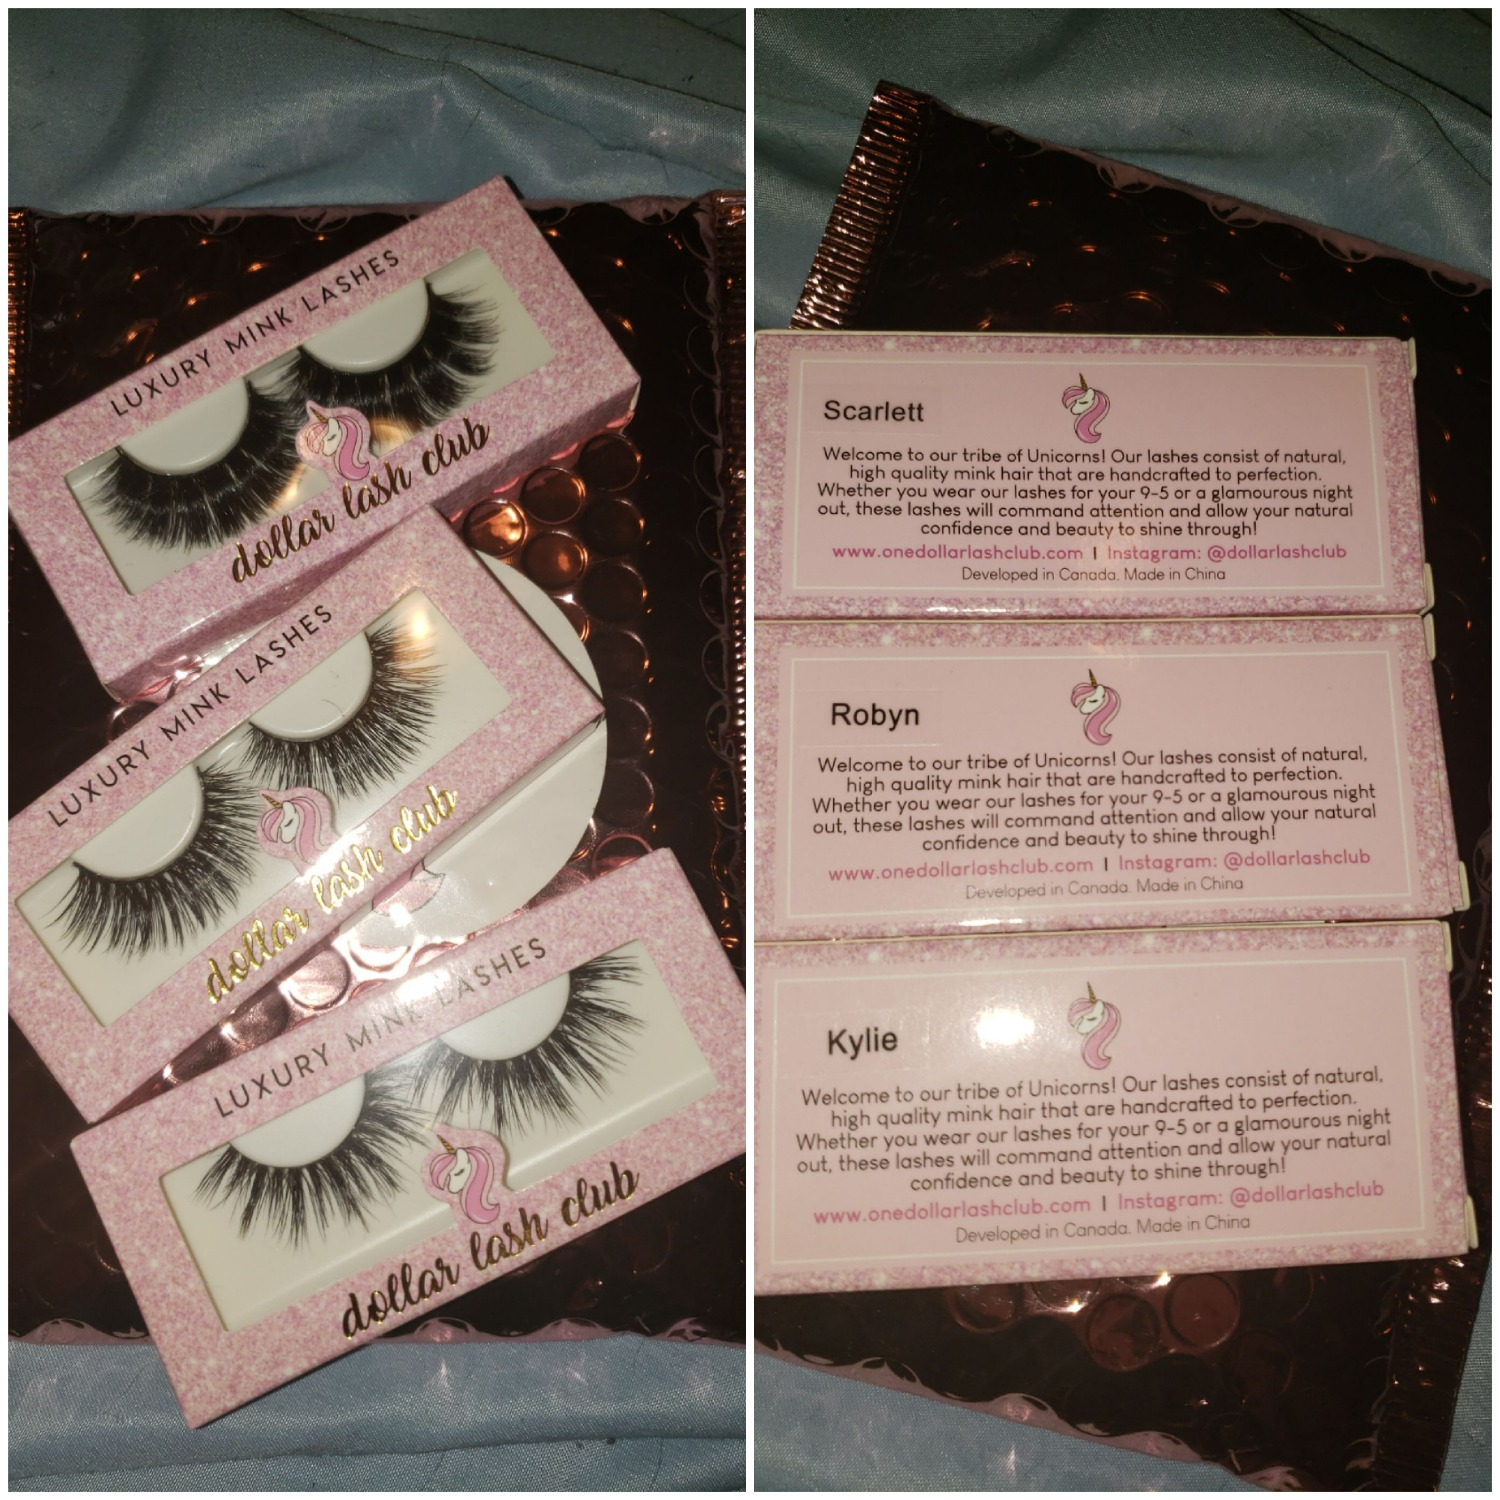 b8dd501b550 I ordered the Robyn, Scarlett and Kylie lashes. They arrived quickly and  are absolutely gorgeous. These lashes are great quality and the easiest to  put on, ...